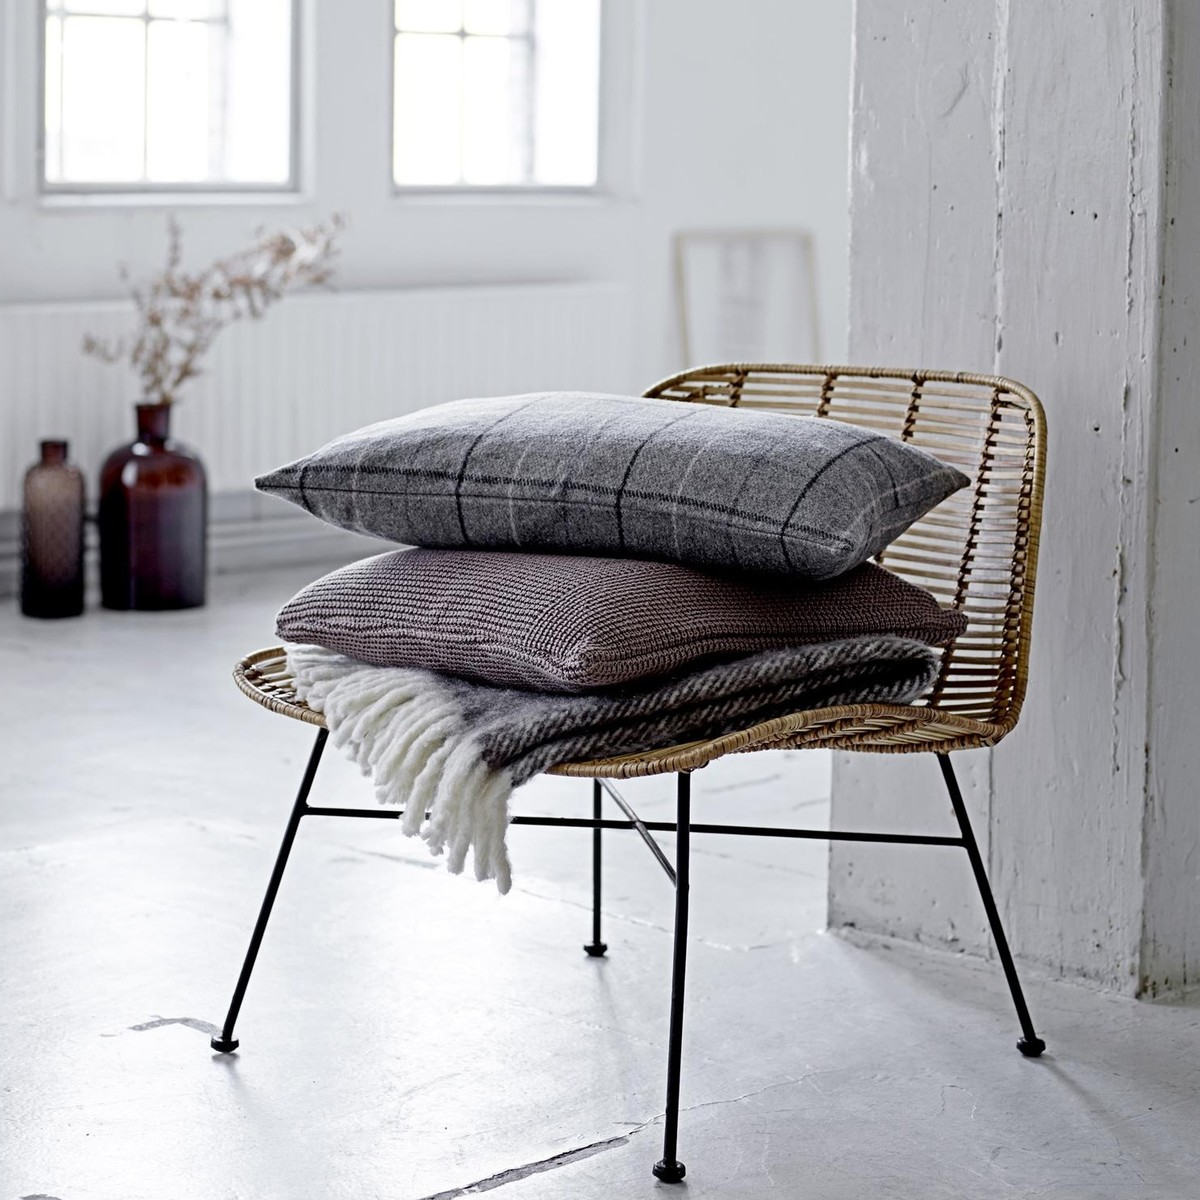 Bloomingville   Bloomingville Throw With Fringes